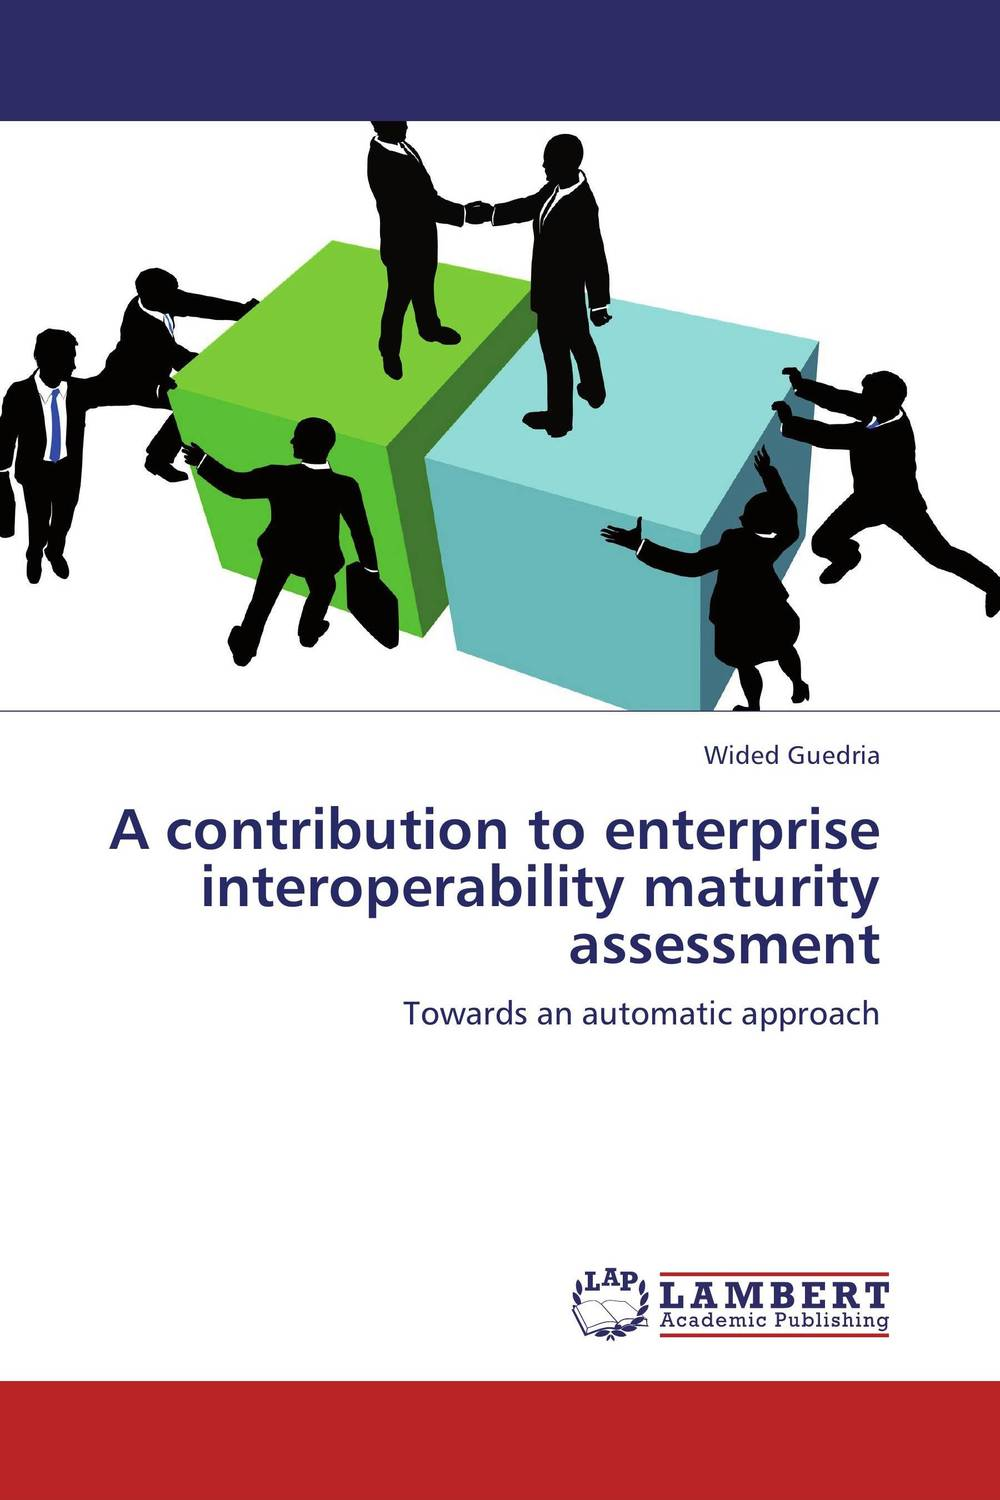 A contribution to enterprise interoperability maturity assessment a group agent architecture based on fipa and ontology